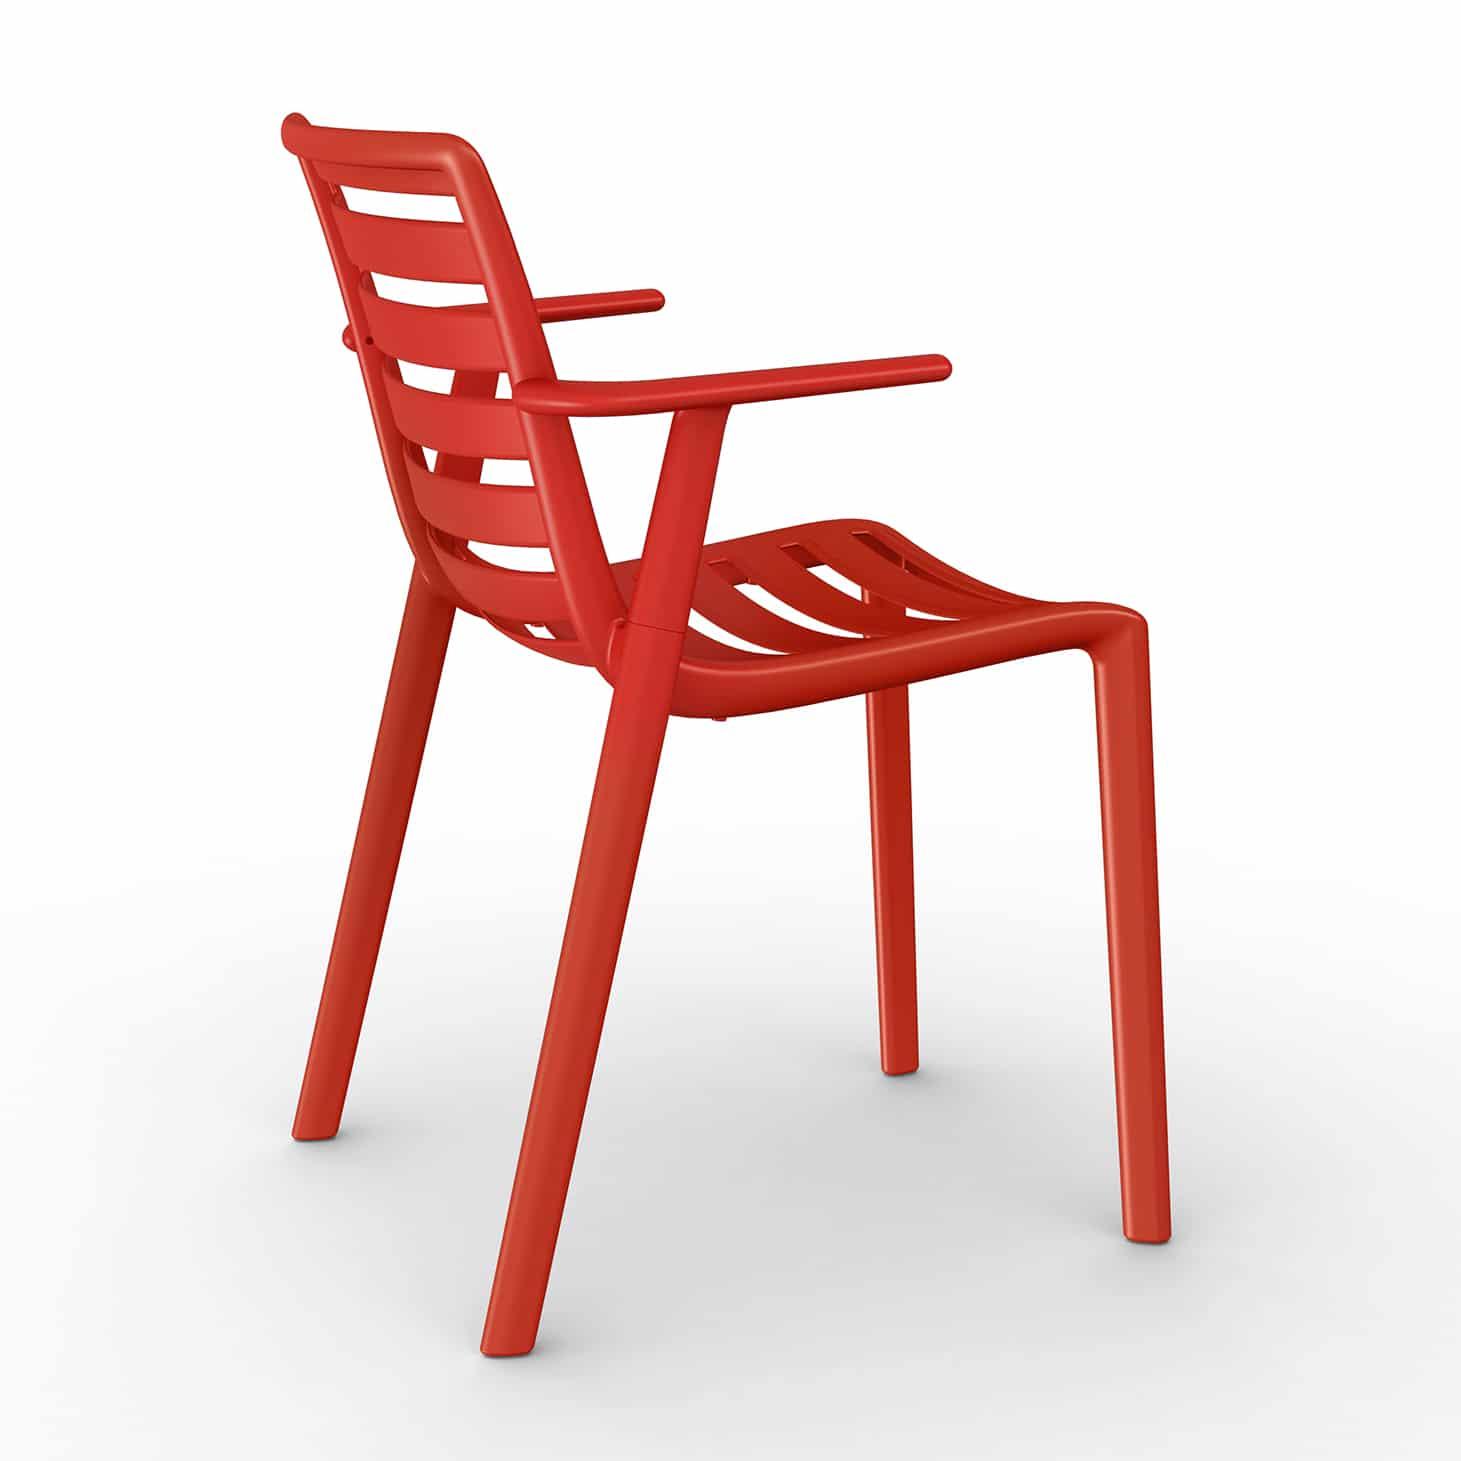 <p>Outdoor Furniture Contemporary Collection – Ysleta Armchair – Red.</p> <p> </p> <p>Armchair designed for indoor and outdoor use available in a variety of colours, capturing essential features such as lightness, stability, functionality, ergonomics and care for the environment. Comfort, Modernity and durability</p>